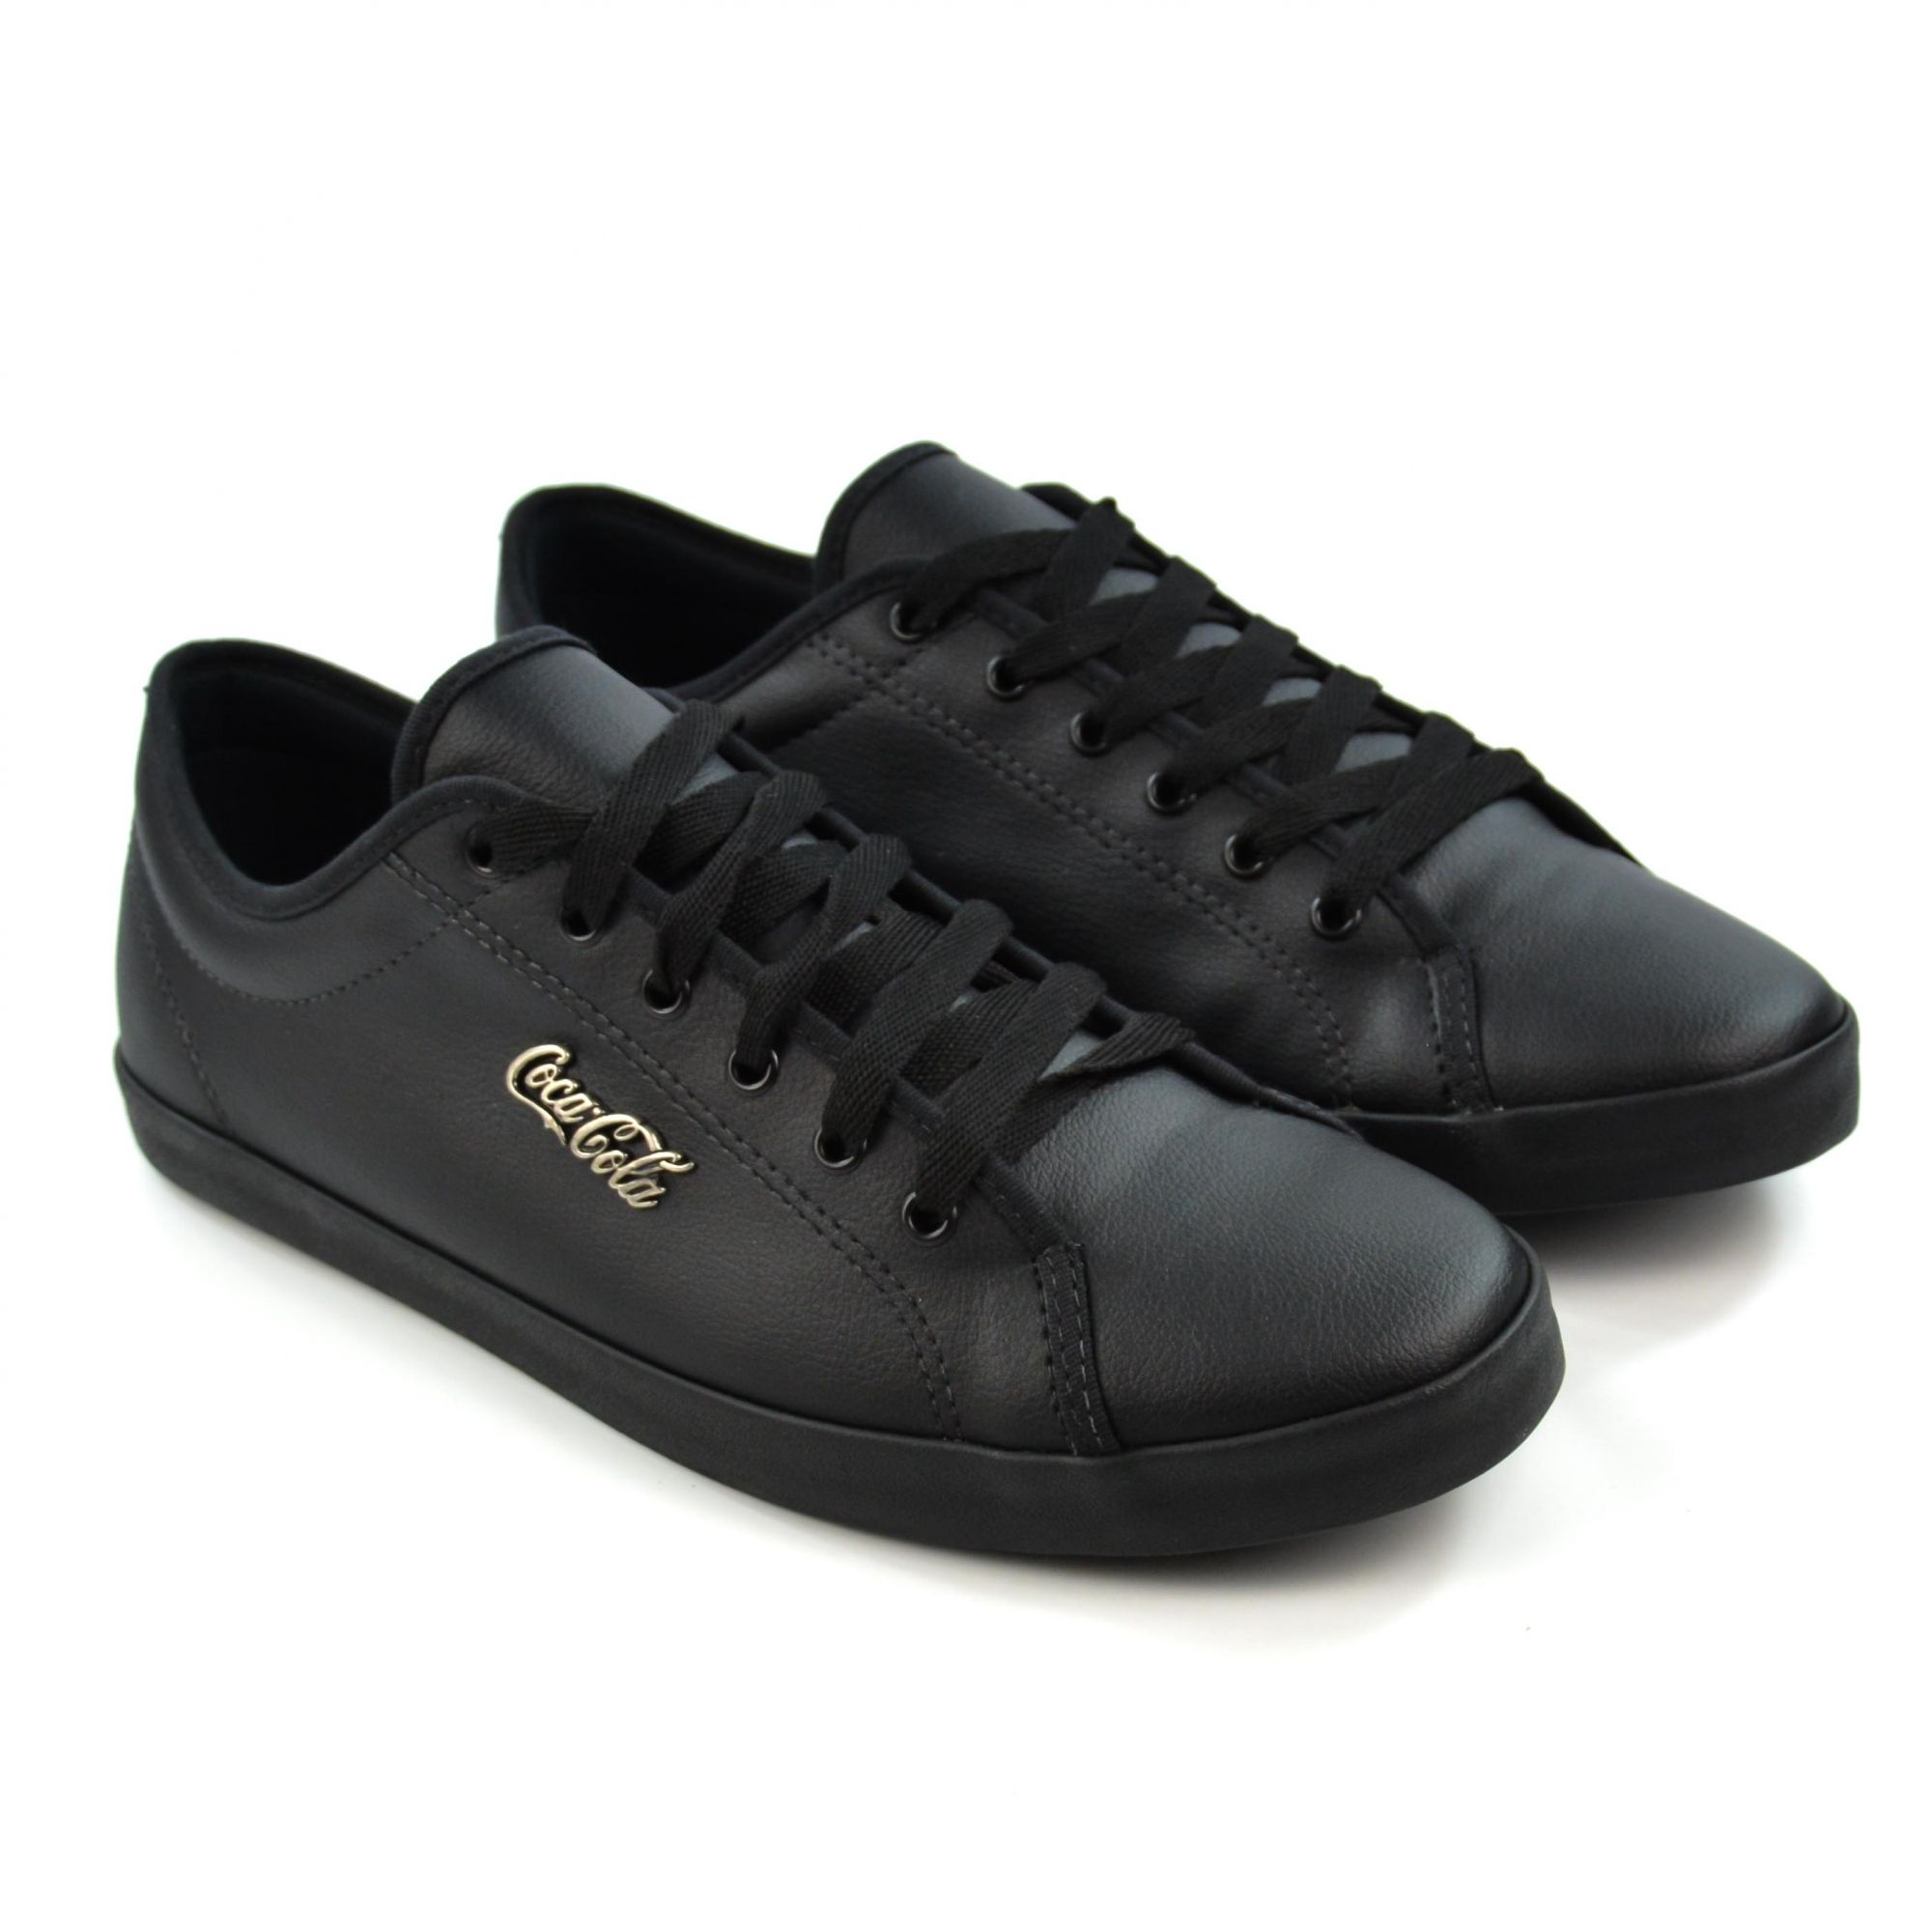 TENIS MARX ALL BLACK CC0800_17 COCA-COLA 16958